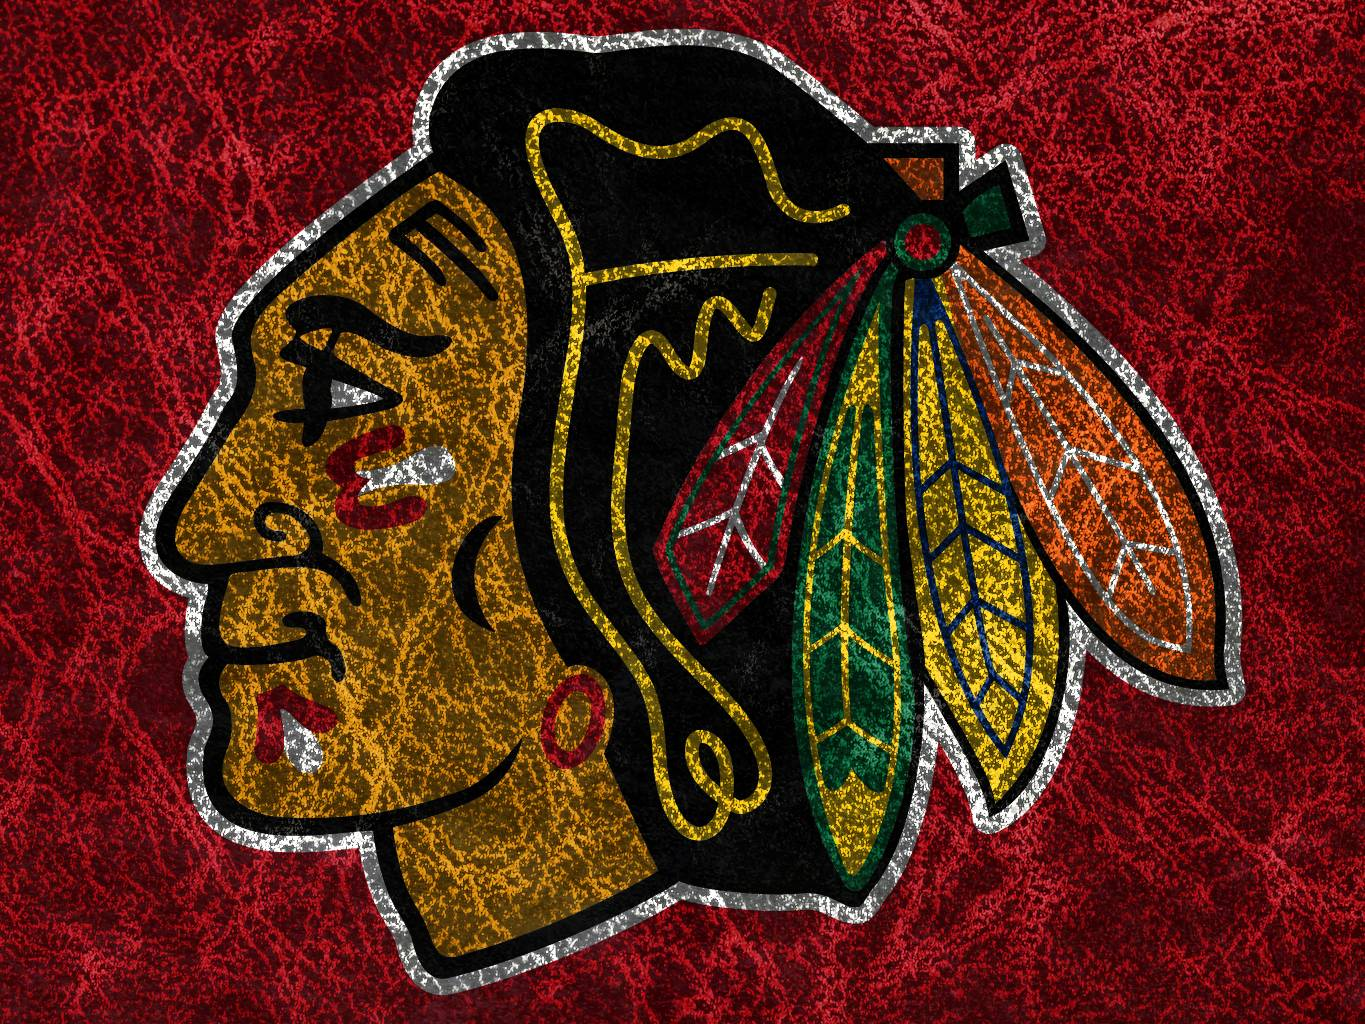 Free chicago blackhawks wallpapers wallpaper cave chicago blackhawks wallpapers chicago blackhawks background voltagebd Image collections